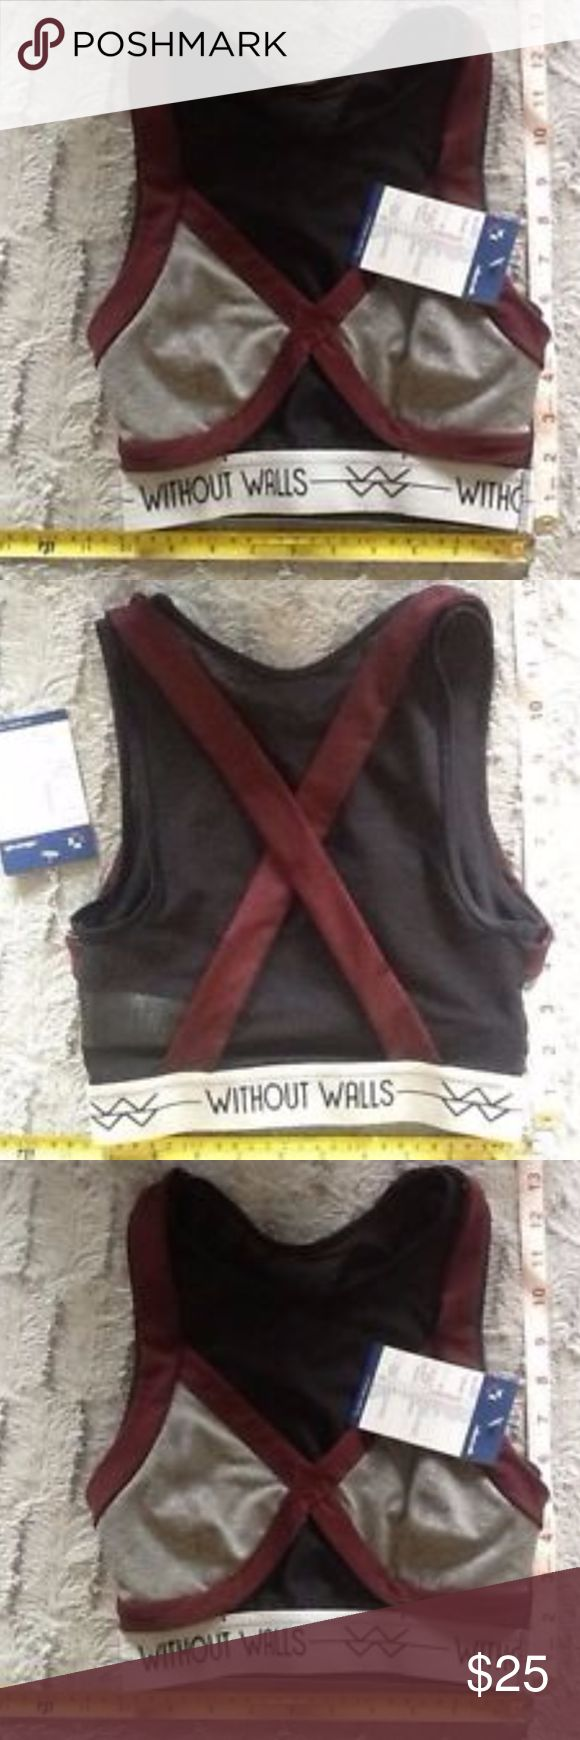 Urban Outfitters Without Walls Grey Sports Bra xs Urban Outfitters Without Walls Grey Sports Bra Black Mesh xcross back NWT xs Urban Outfitters Other